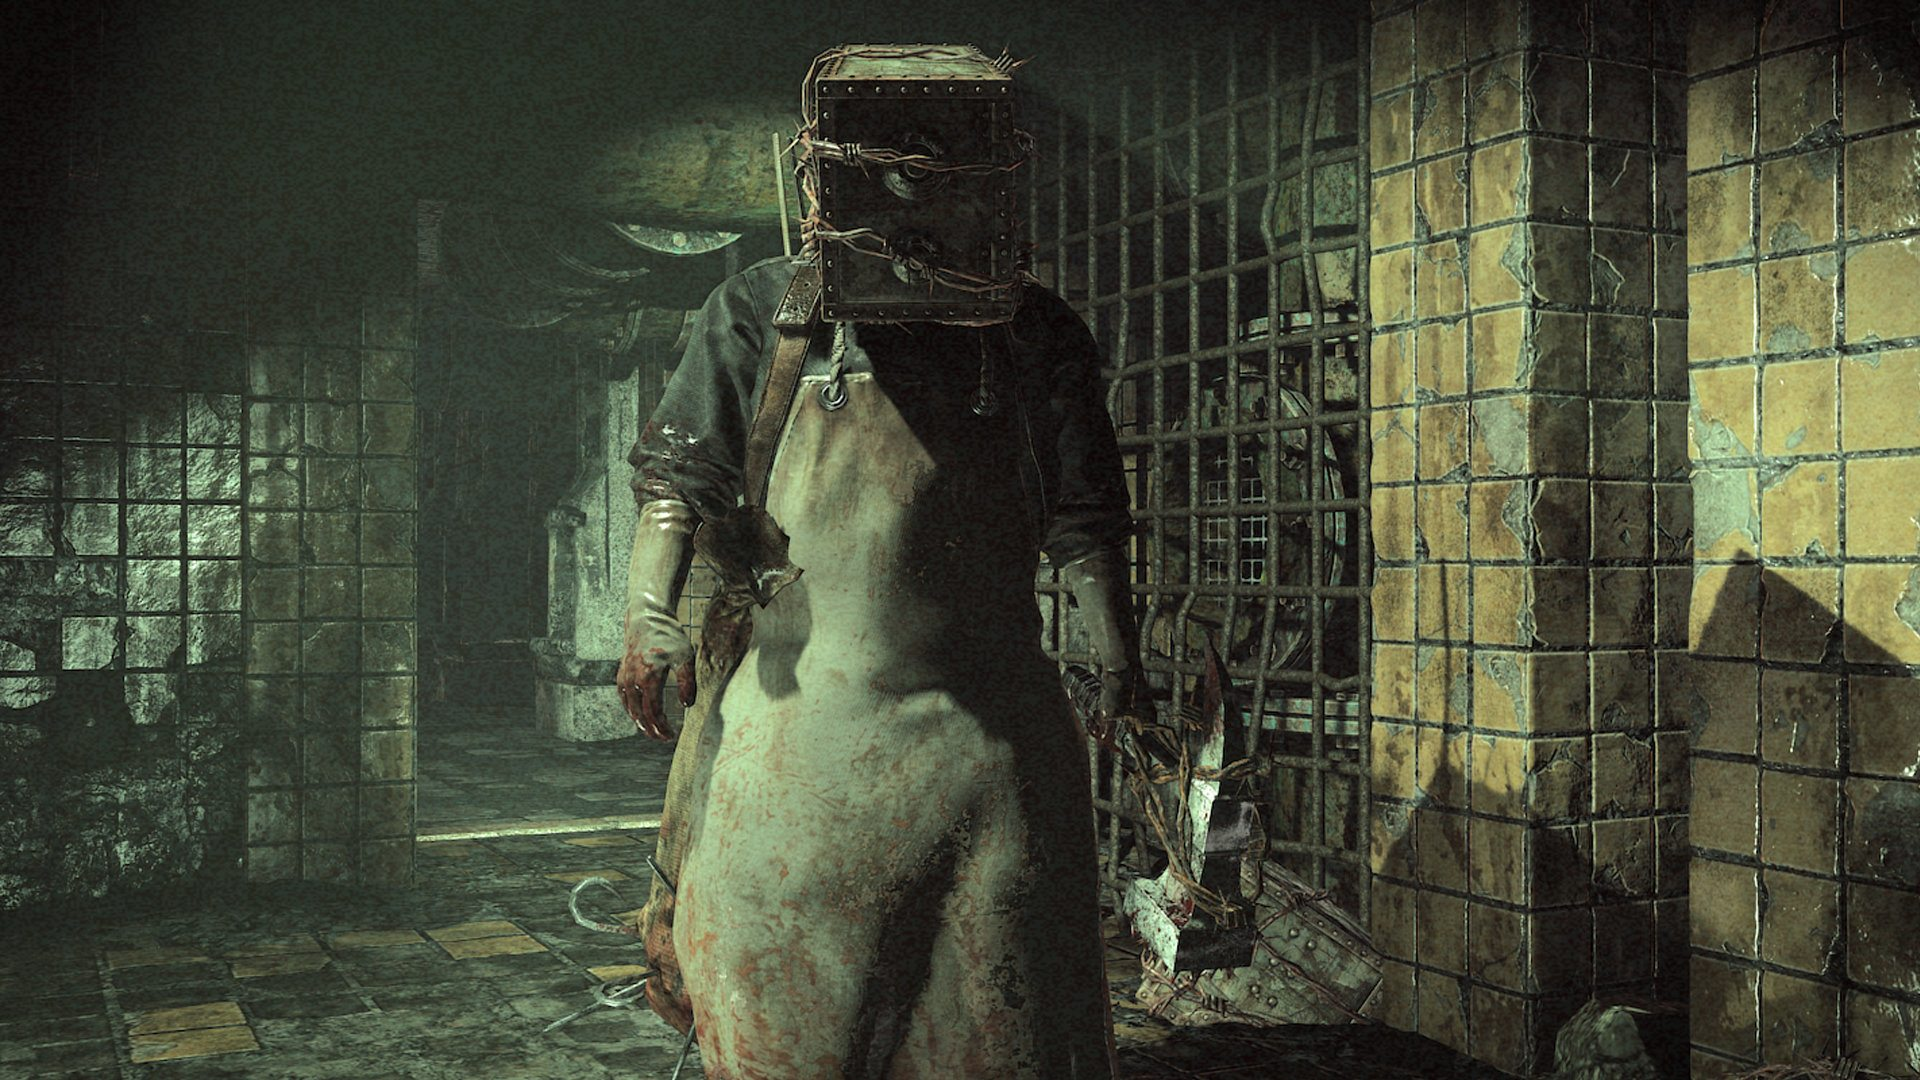 Monster from 'The Evil Within'